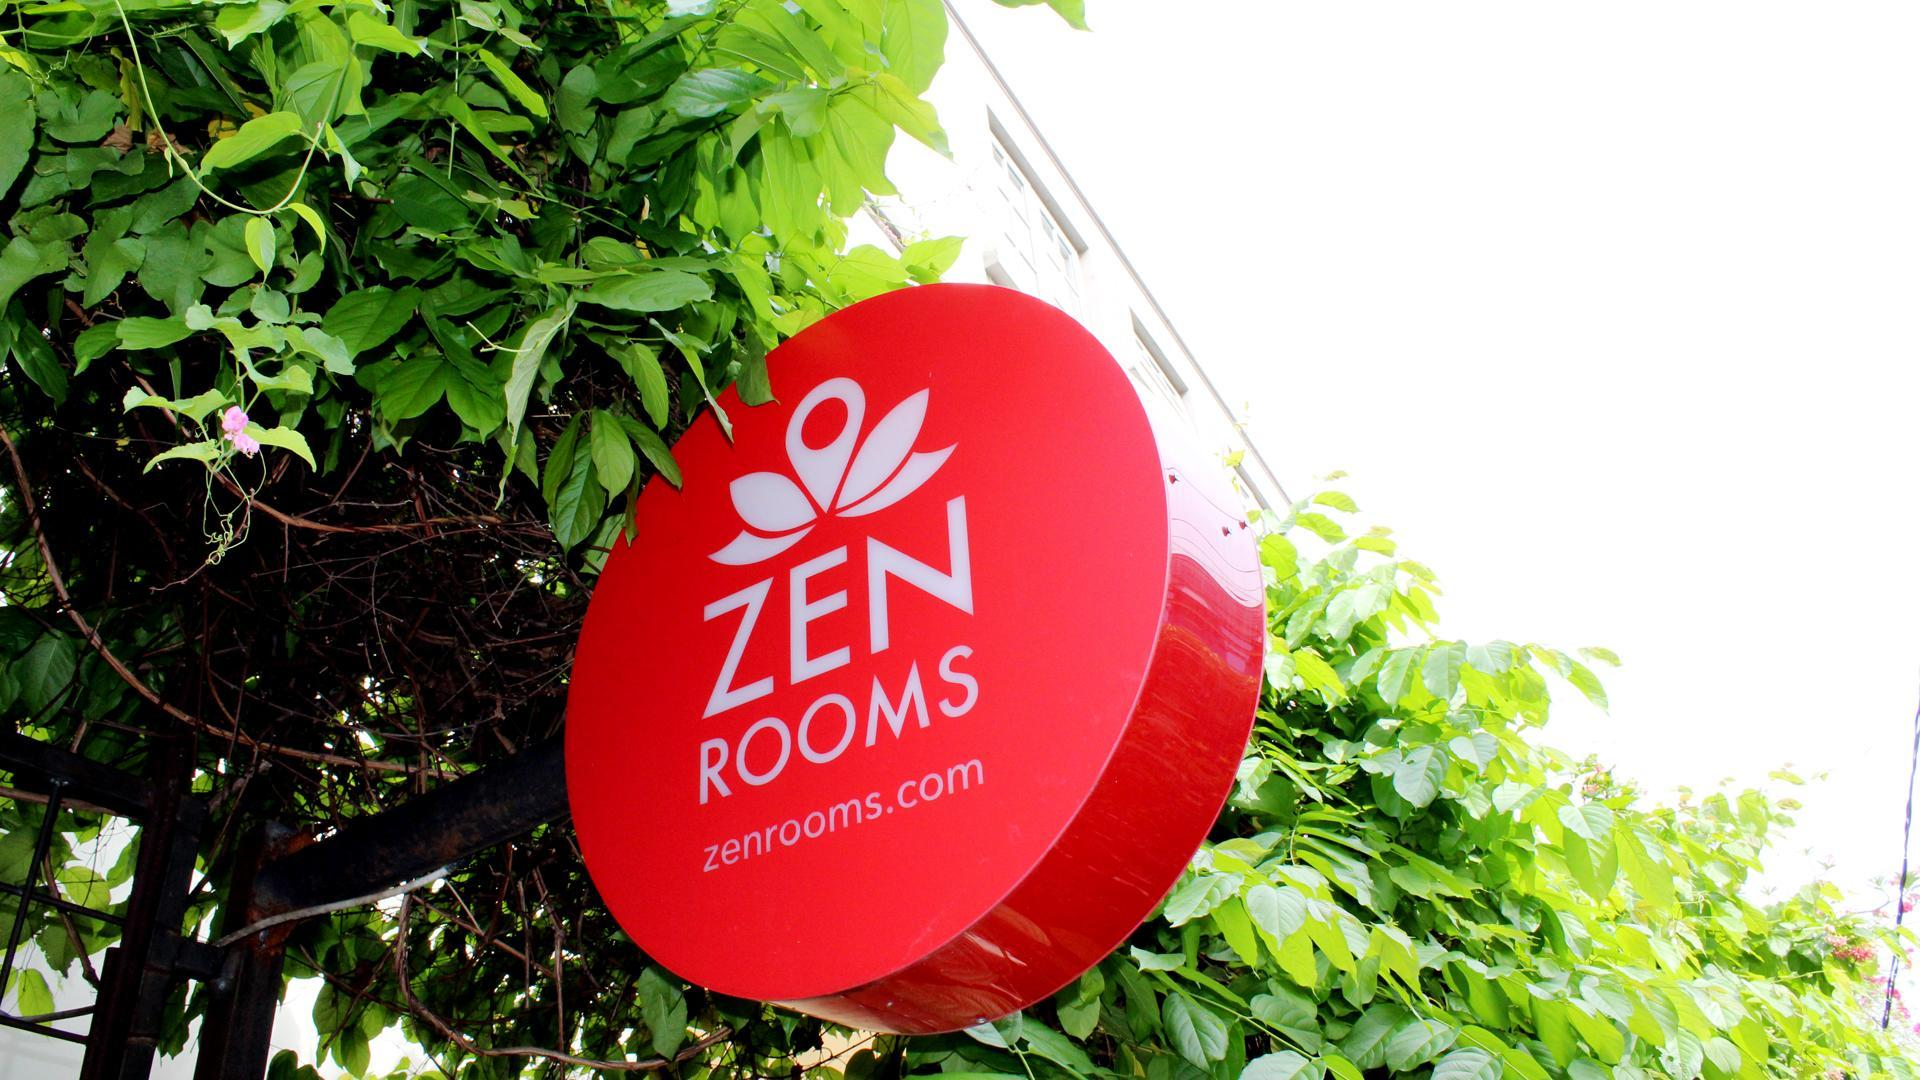 ZEN Rooms Orchard, Orchard